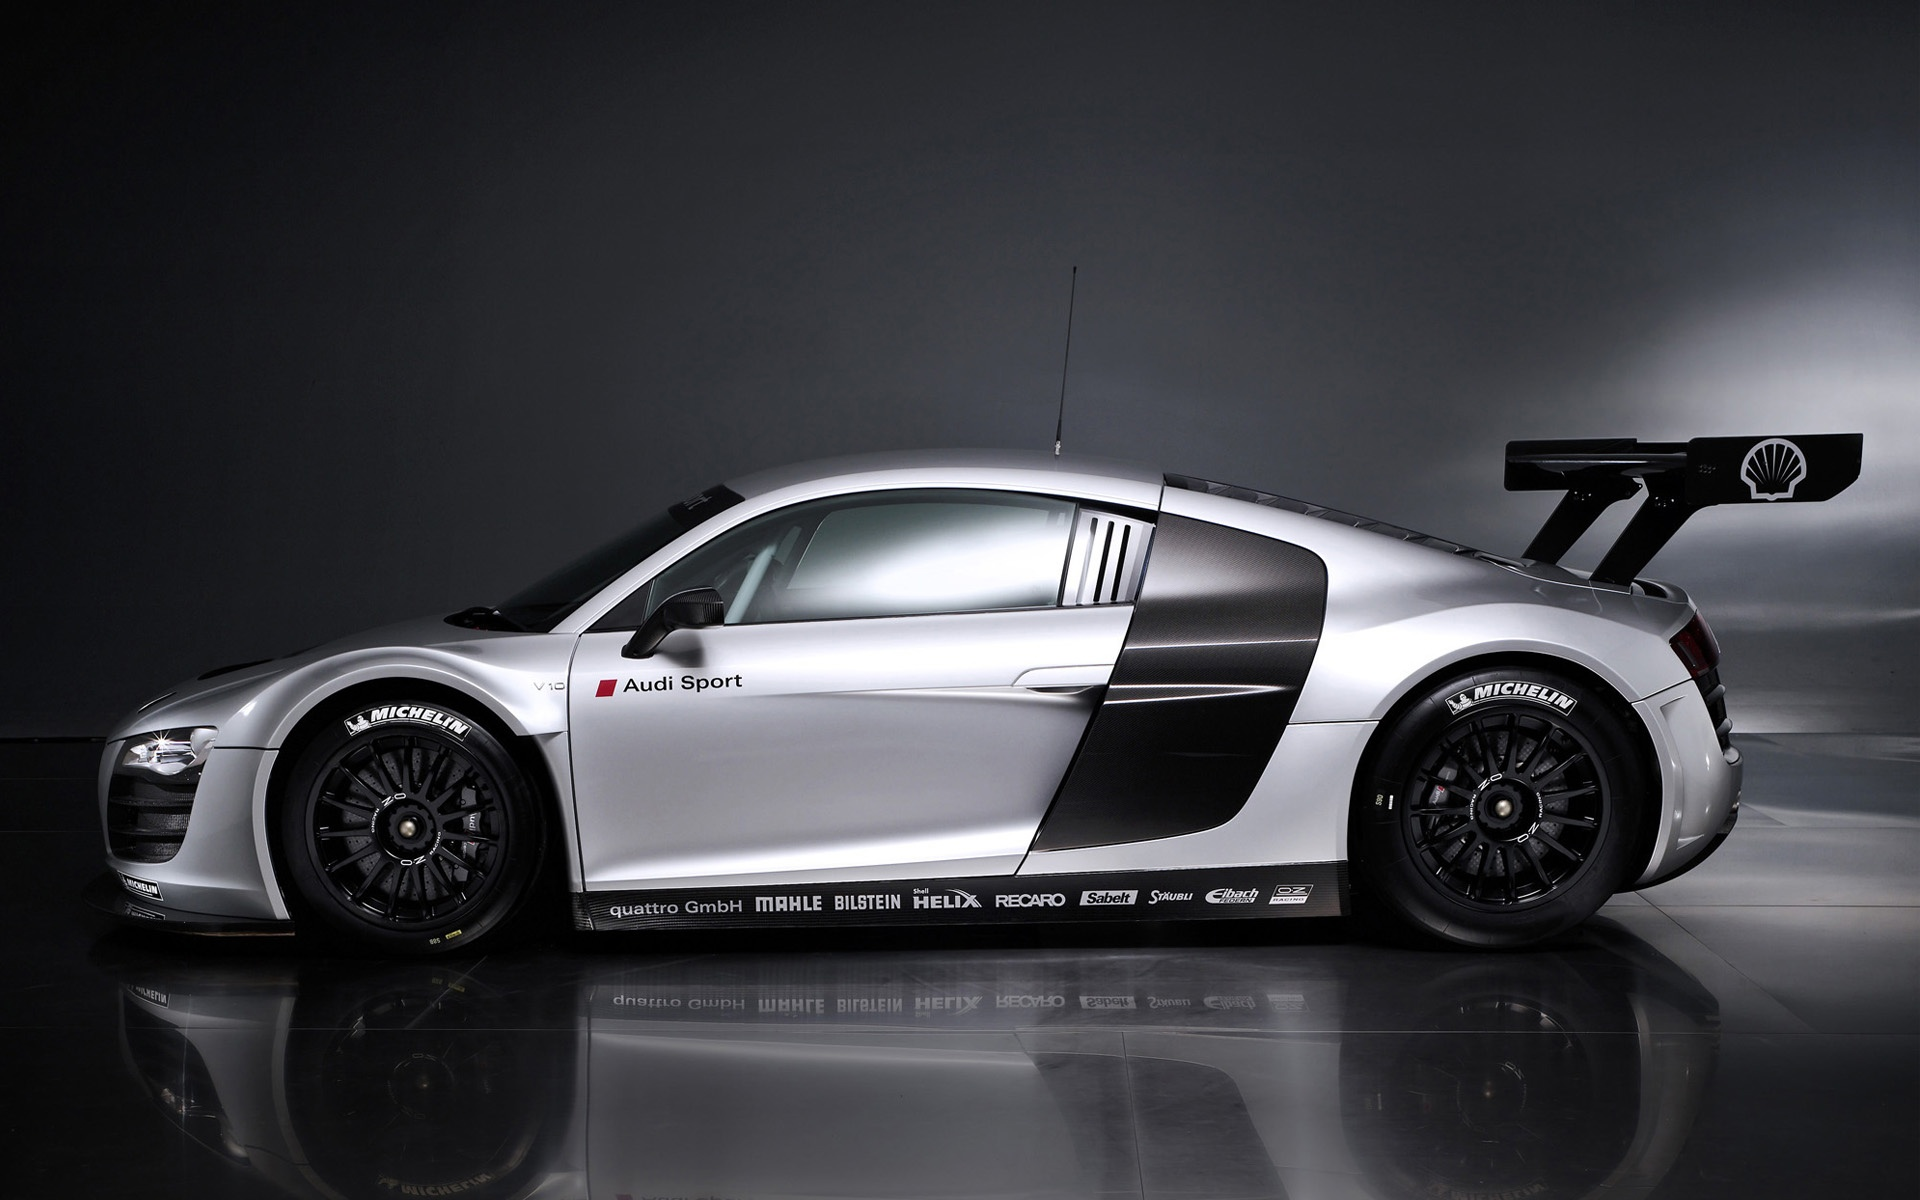 Audi R8 Lms Wide Hd Wallpapers In Jpg Format For Free Download